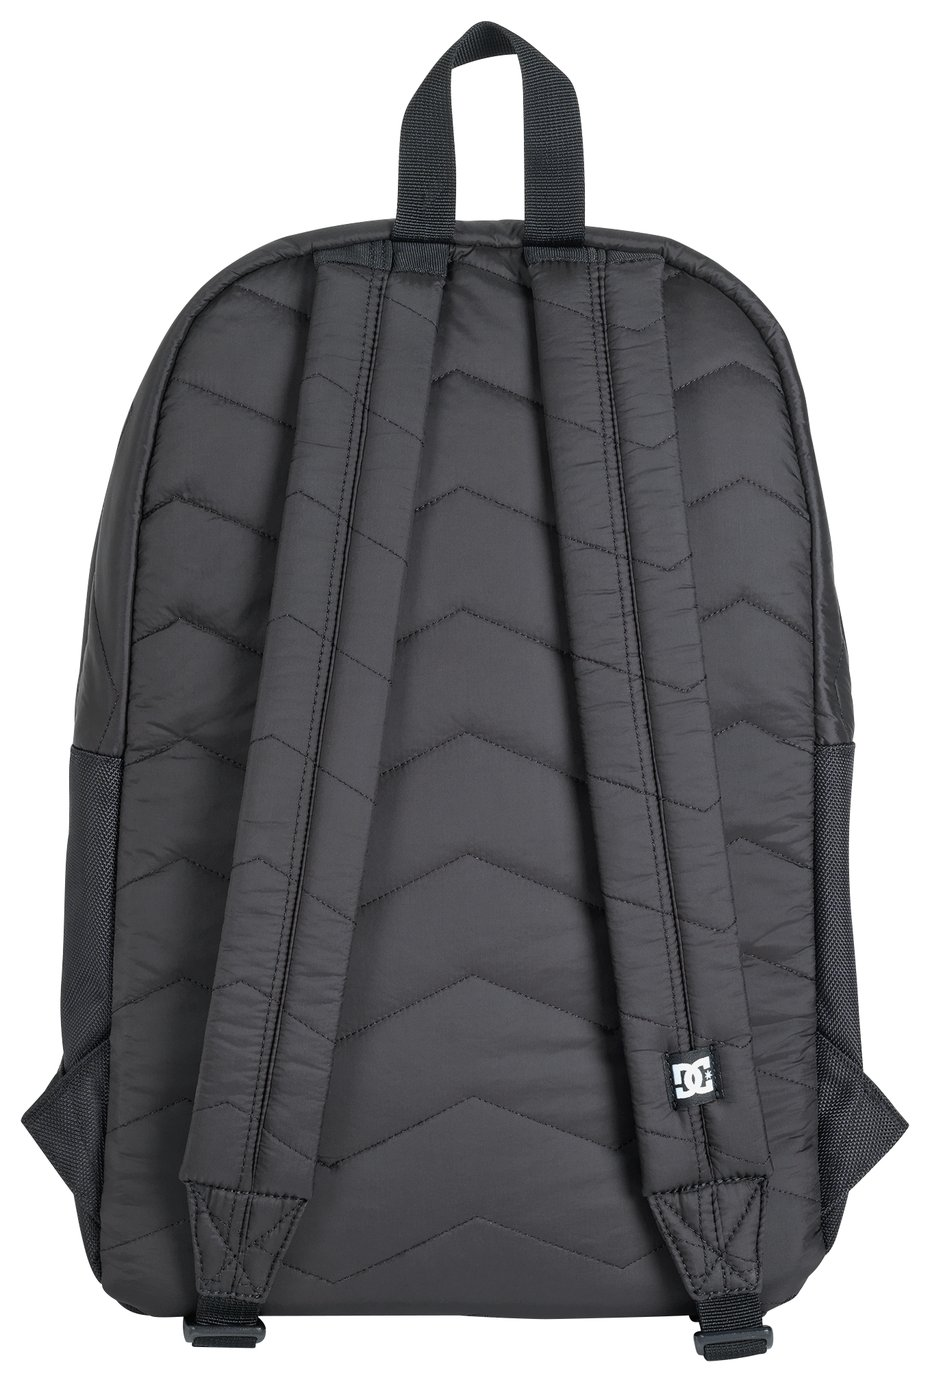 DC Black Quilted Backpack lowest price